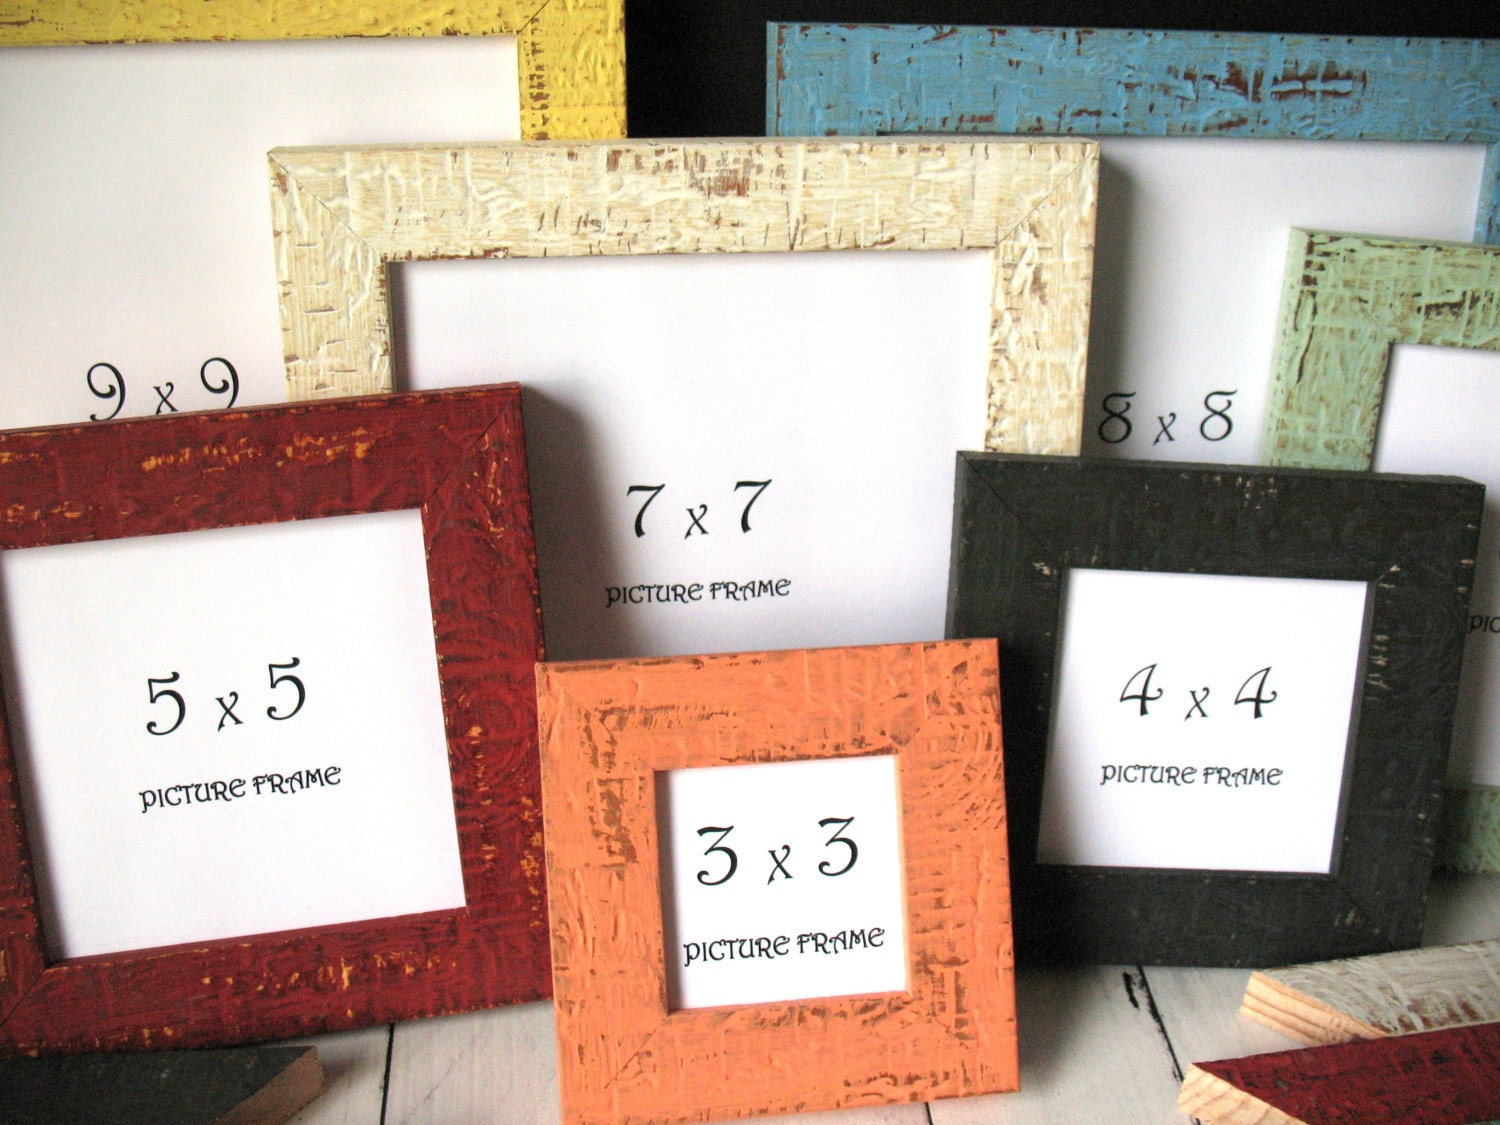 SQUARE - 12 COLORS! MINI Beachy Picture Frame Instagram Photo ...